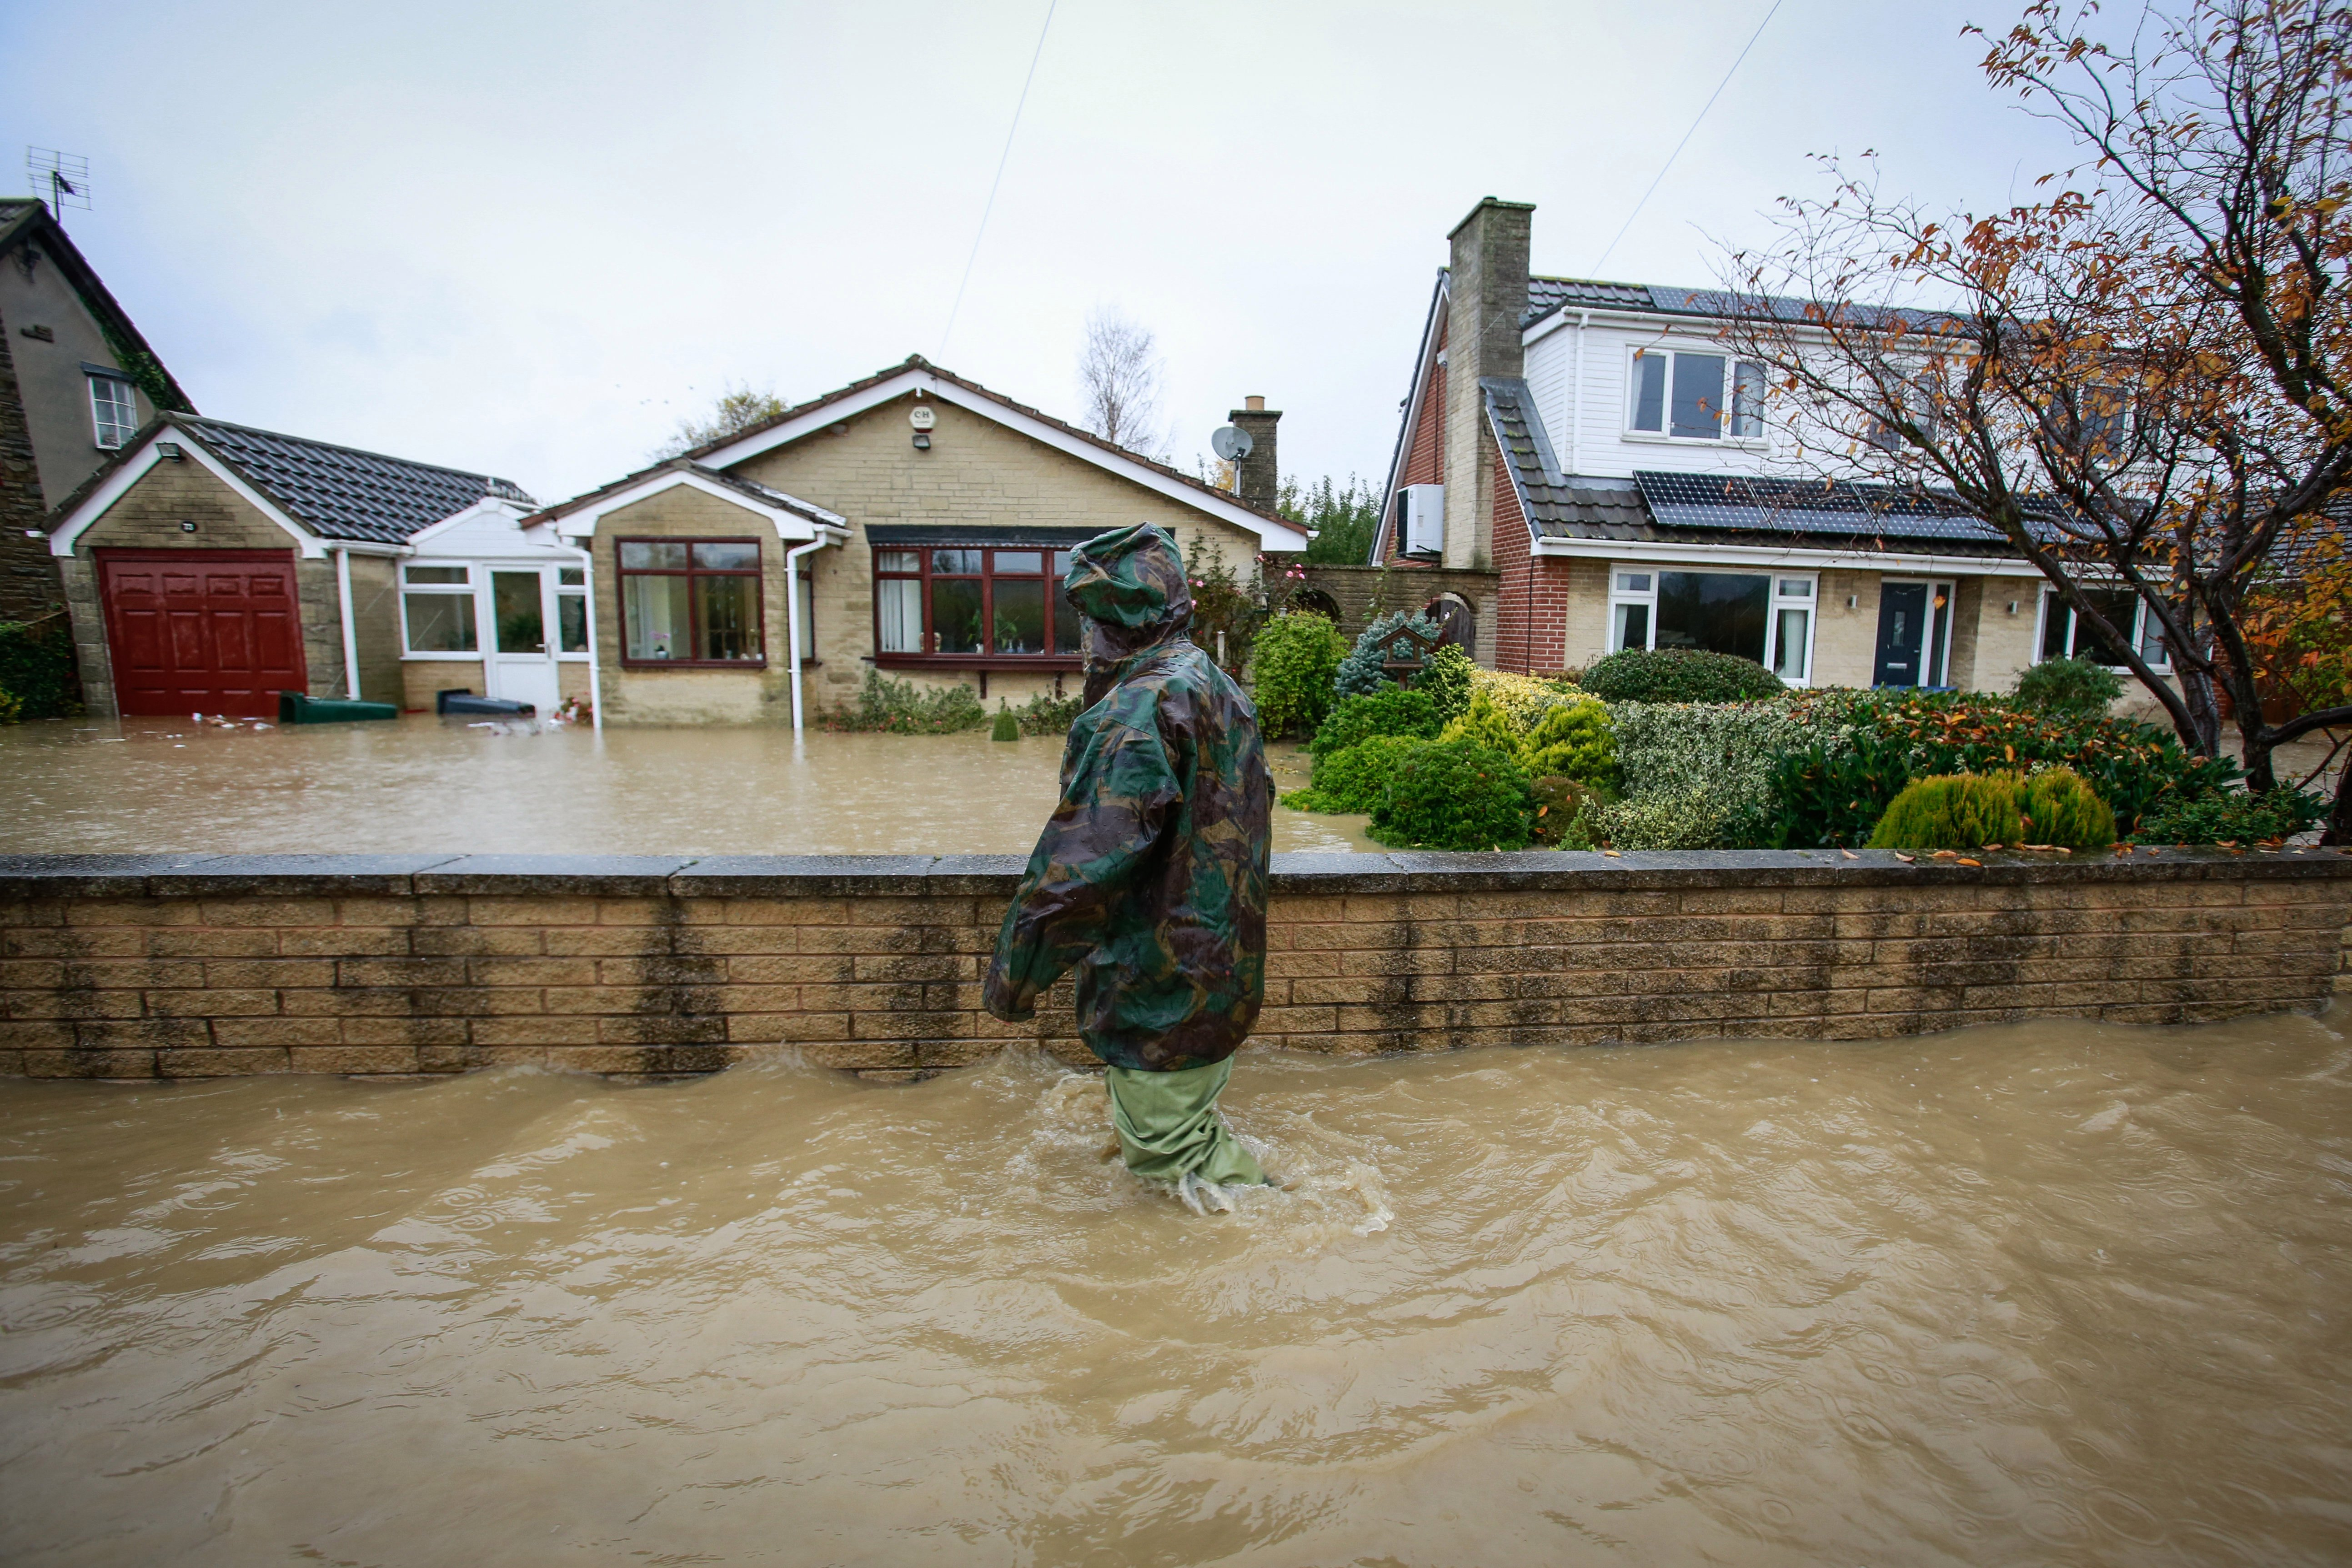 A number of homes were damaged by the flooding in Whiston near Sheffield